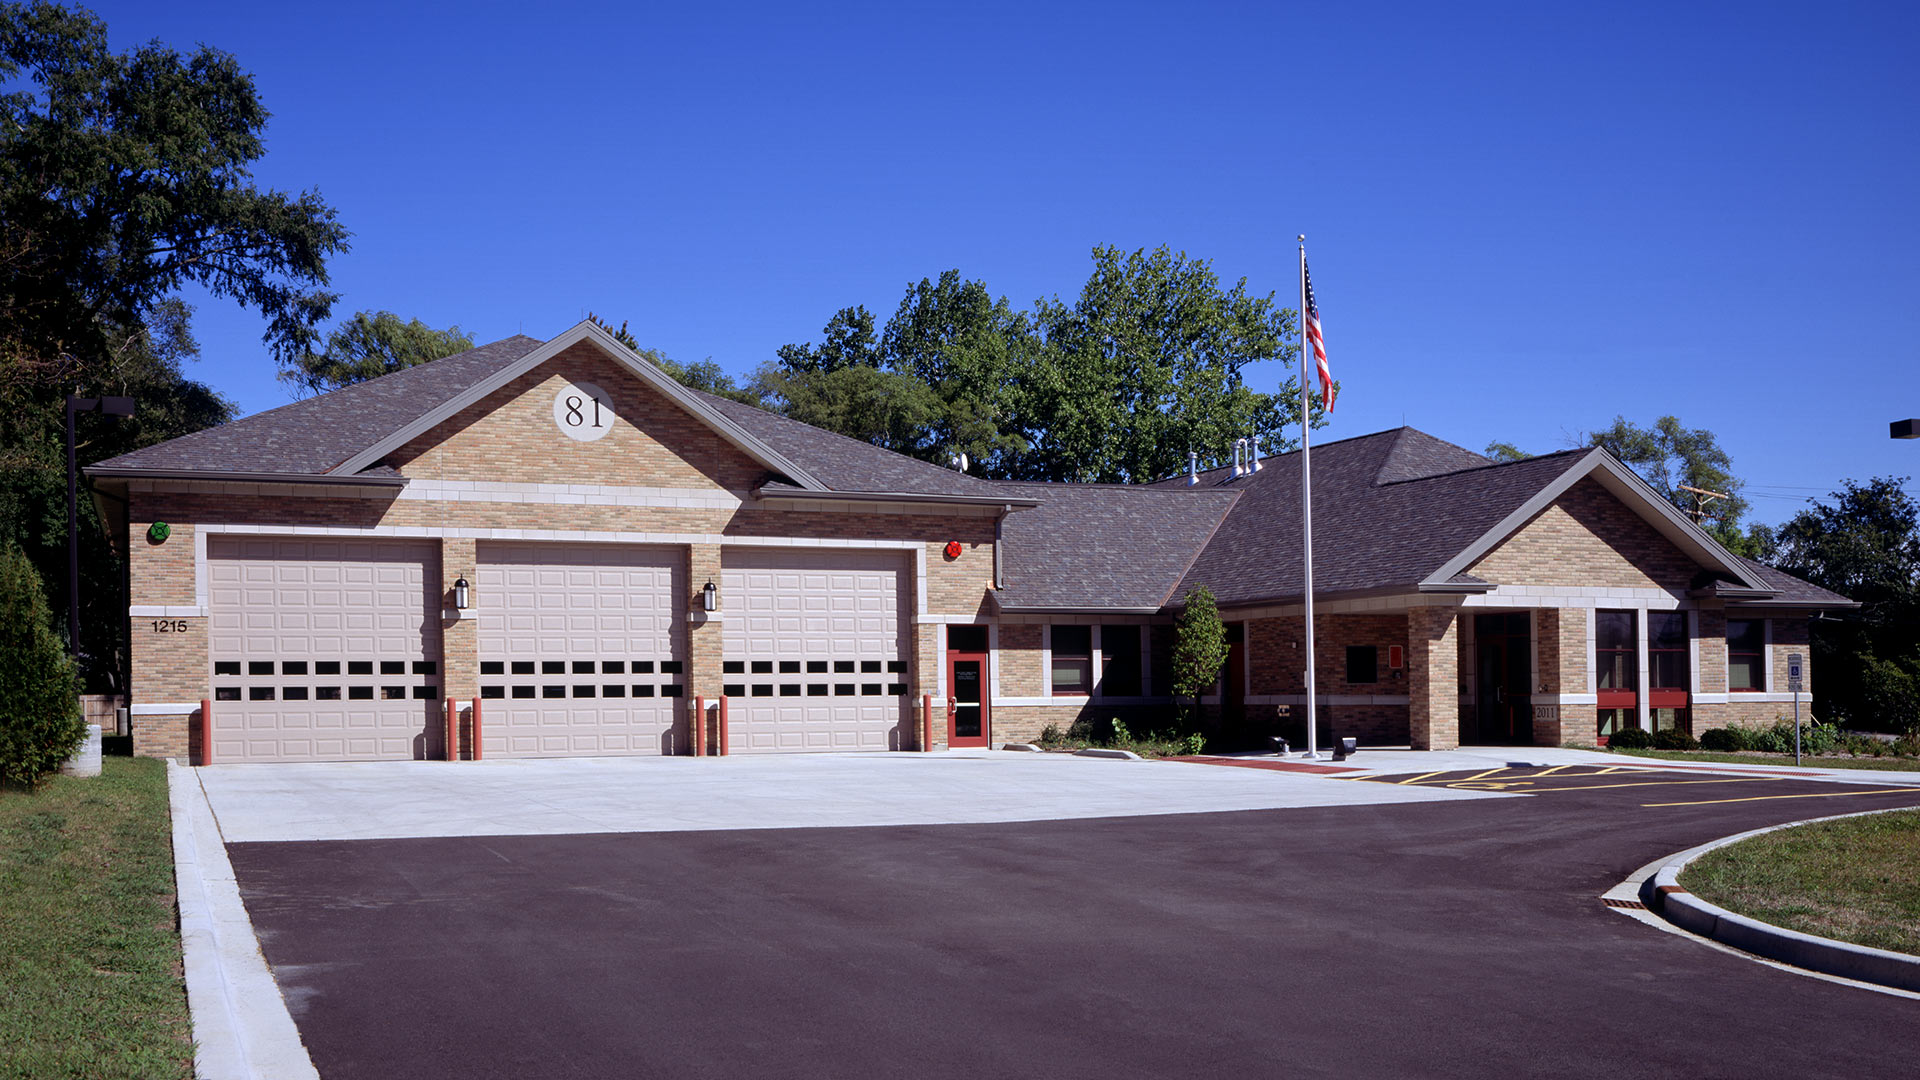 Village of Palatine Fire Station 81